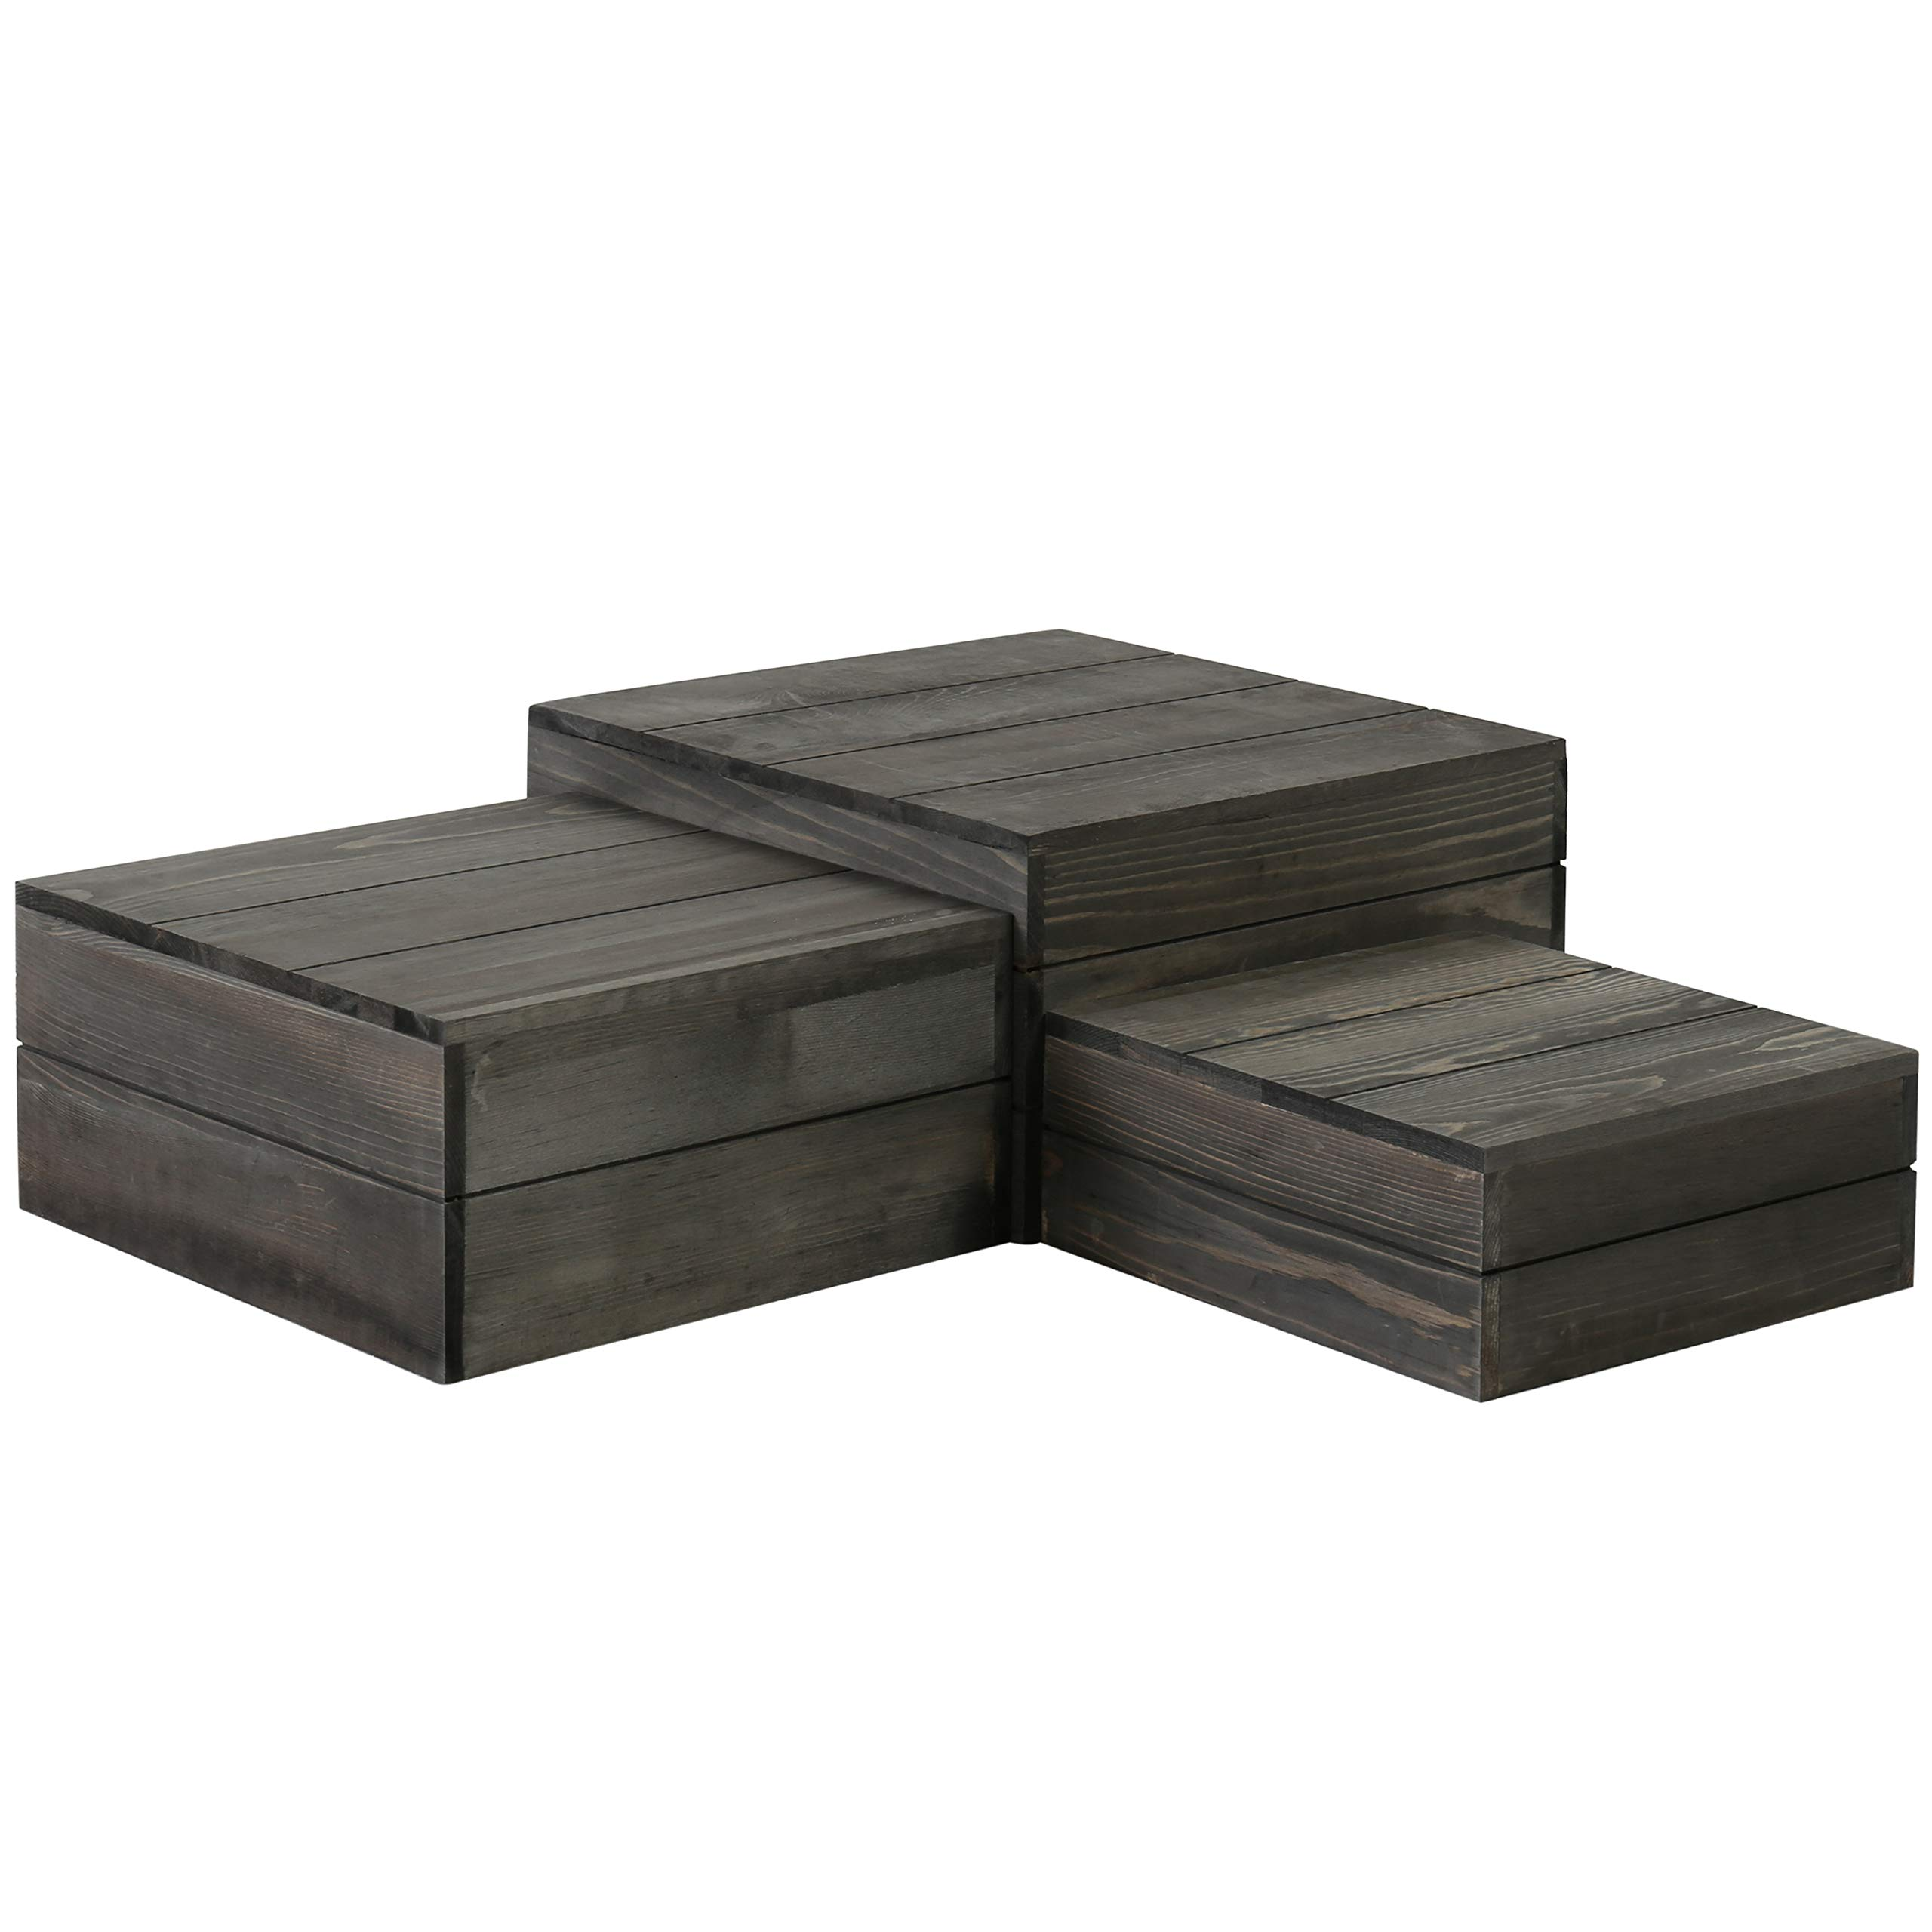 MyGift Rustic Gray Wood Crate Display Risers, Set of 3 by MyGift (Image #4)